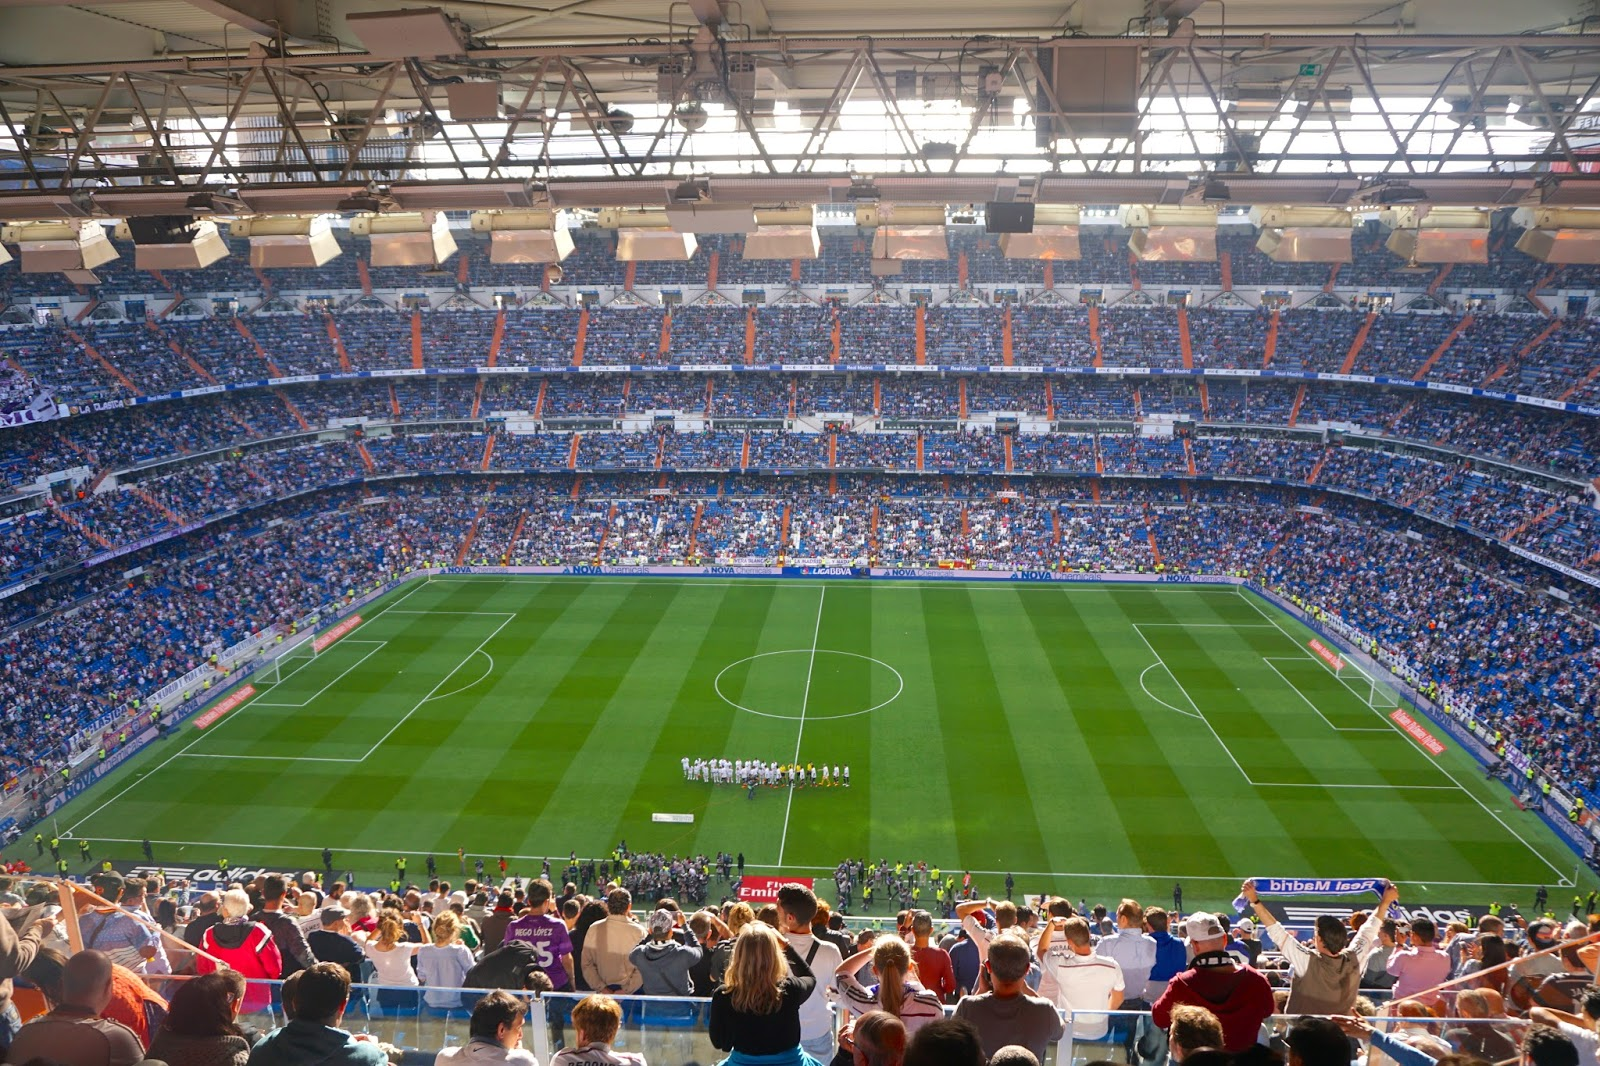 Football players lining up for the coin toss before a Real Madrid Match at Santiago Berbabeu Stadium